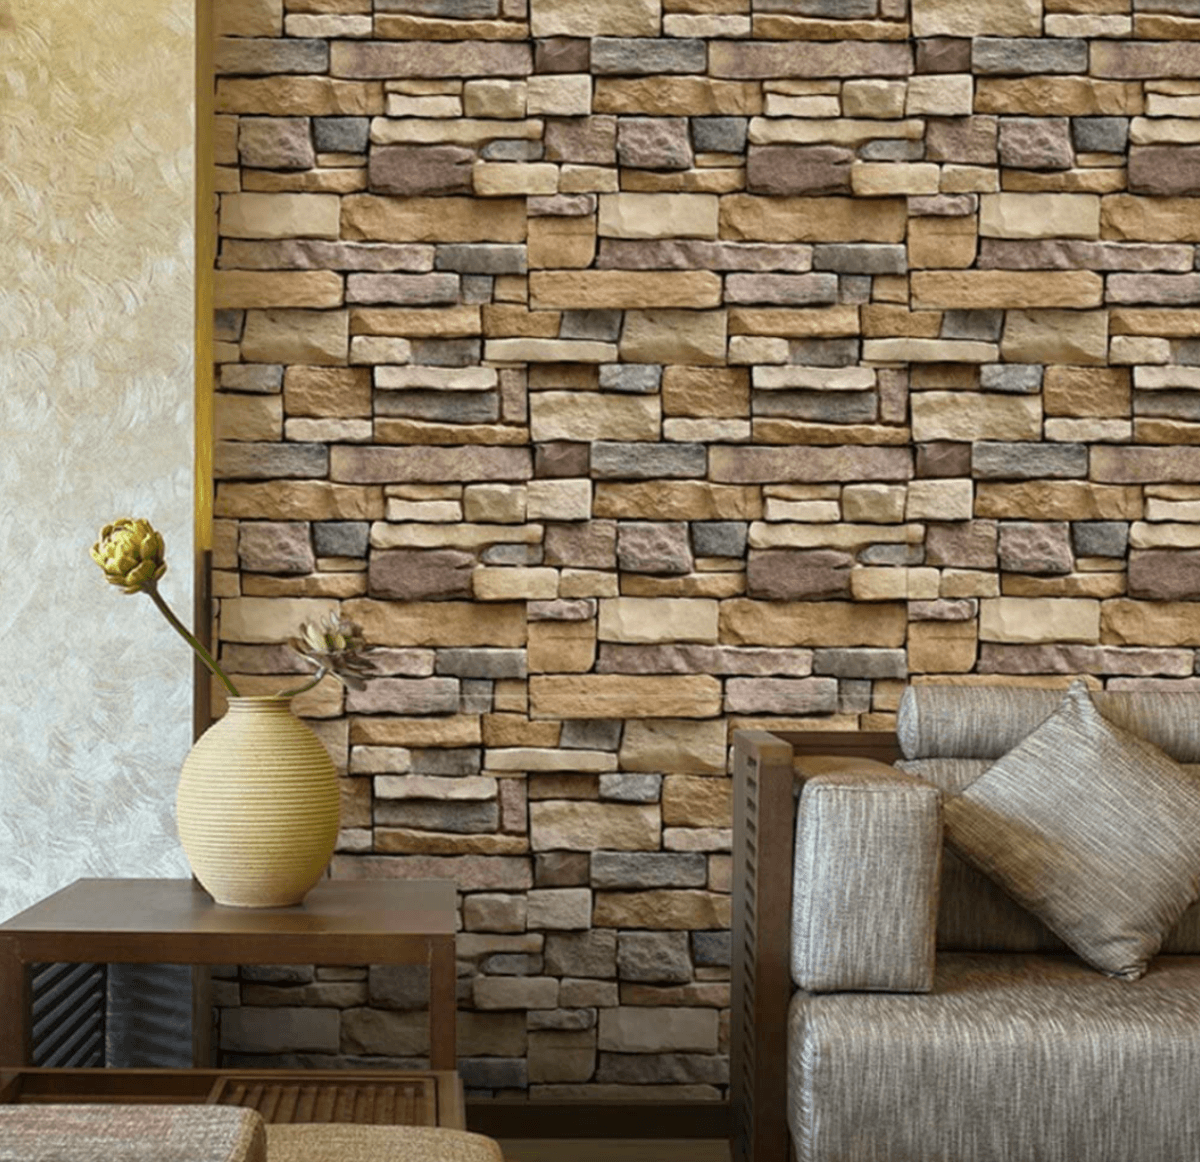 5 types of wall flooring that are in fashion